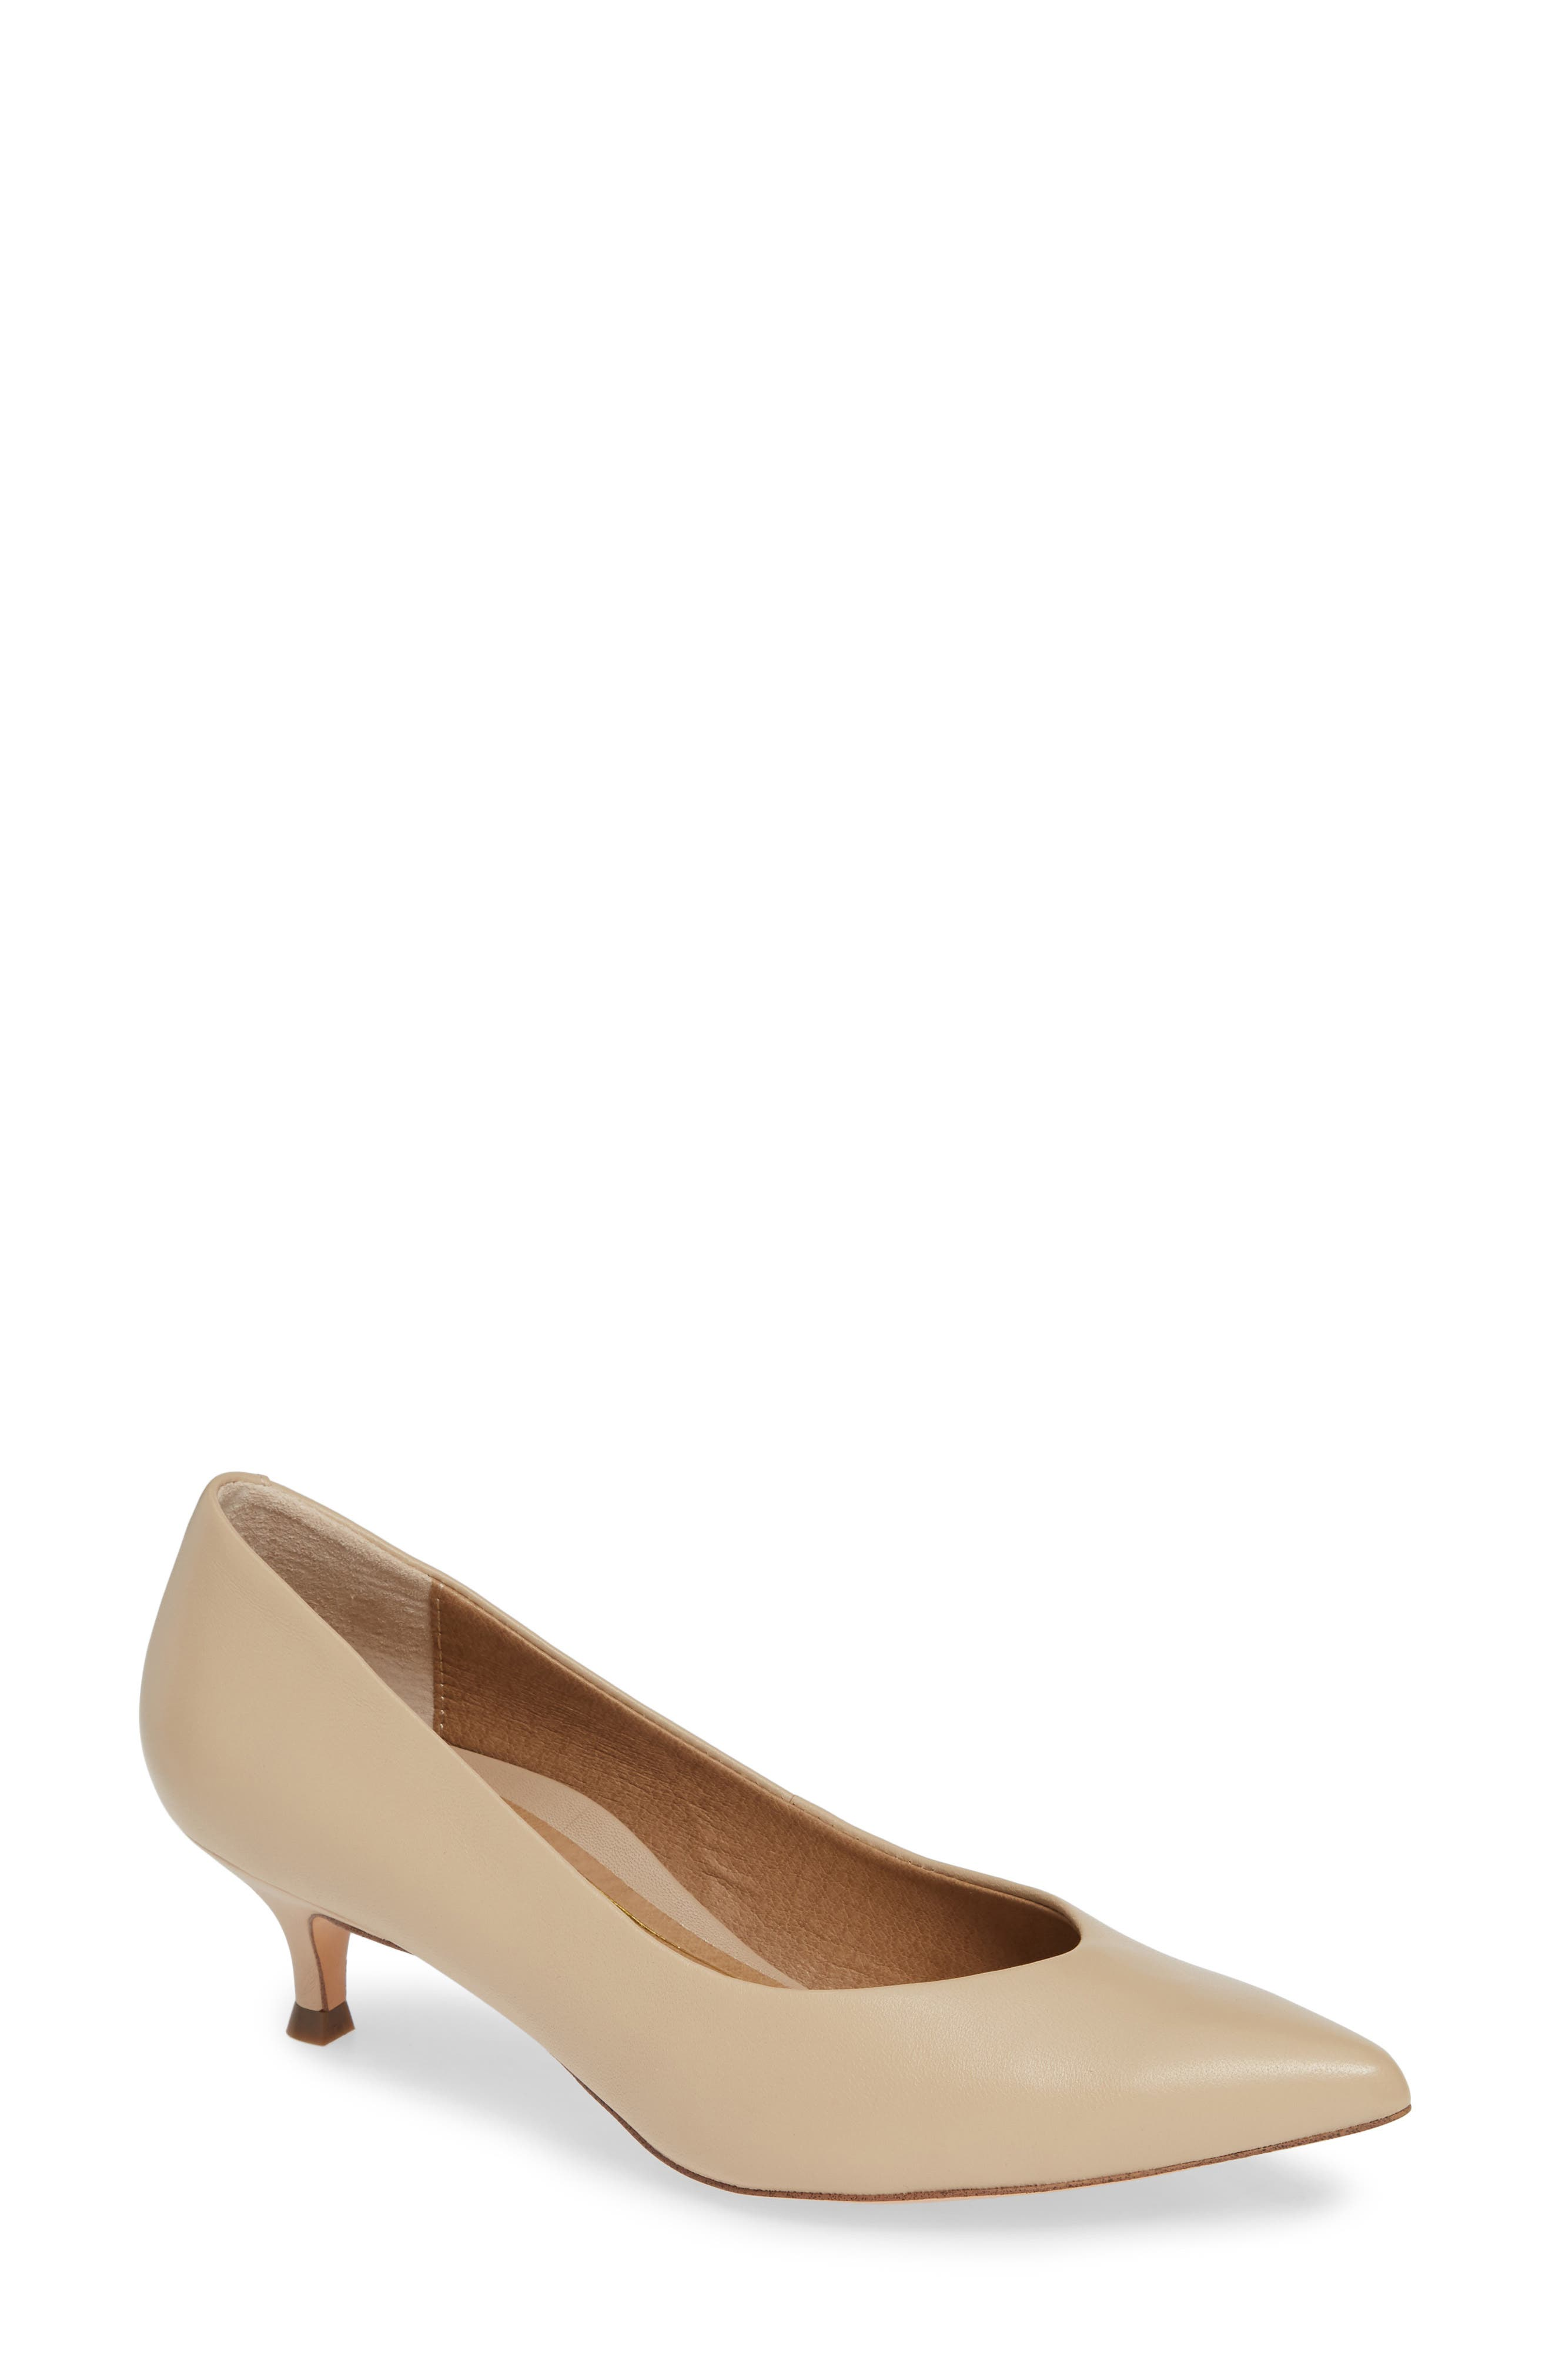 cheap sale authentic Nude Josie Kitten Heels outlet perfect deals online shipping discount sale DqIIq41c